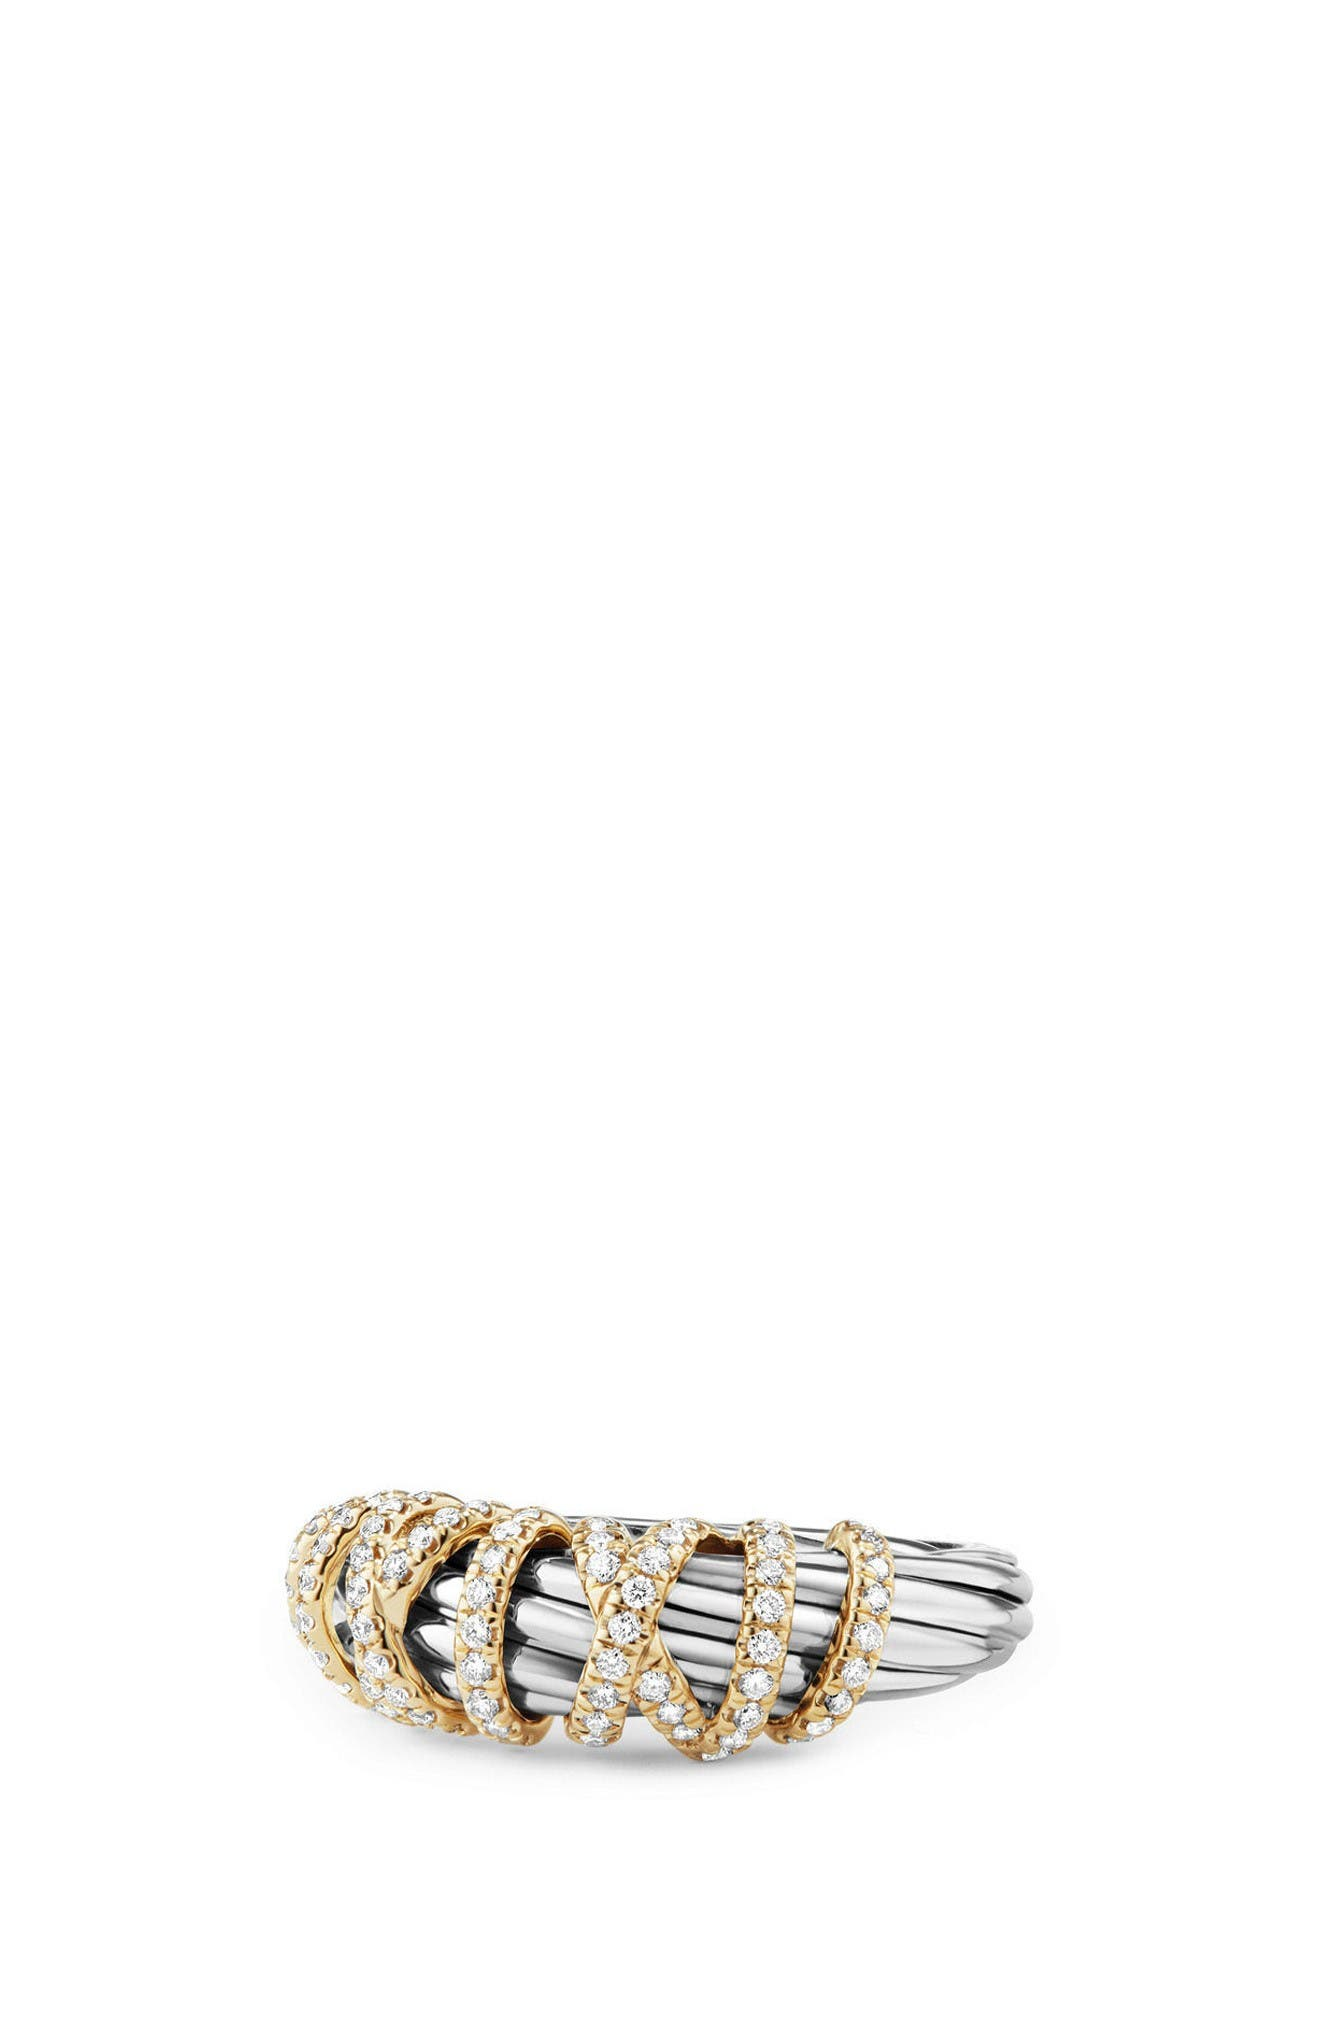 Main Image - David Yurman Ring with Diamond and 18K Gold, 8mm